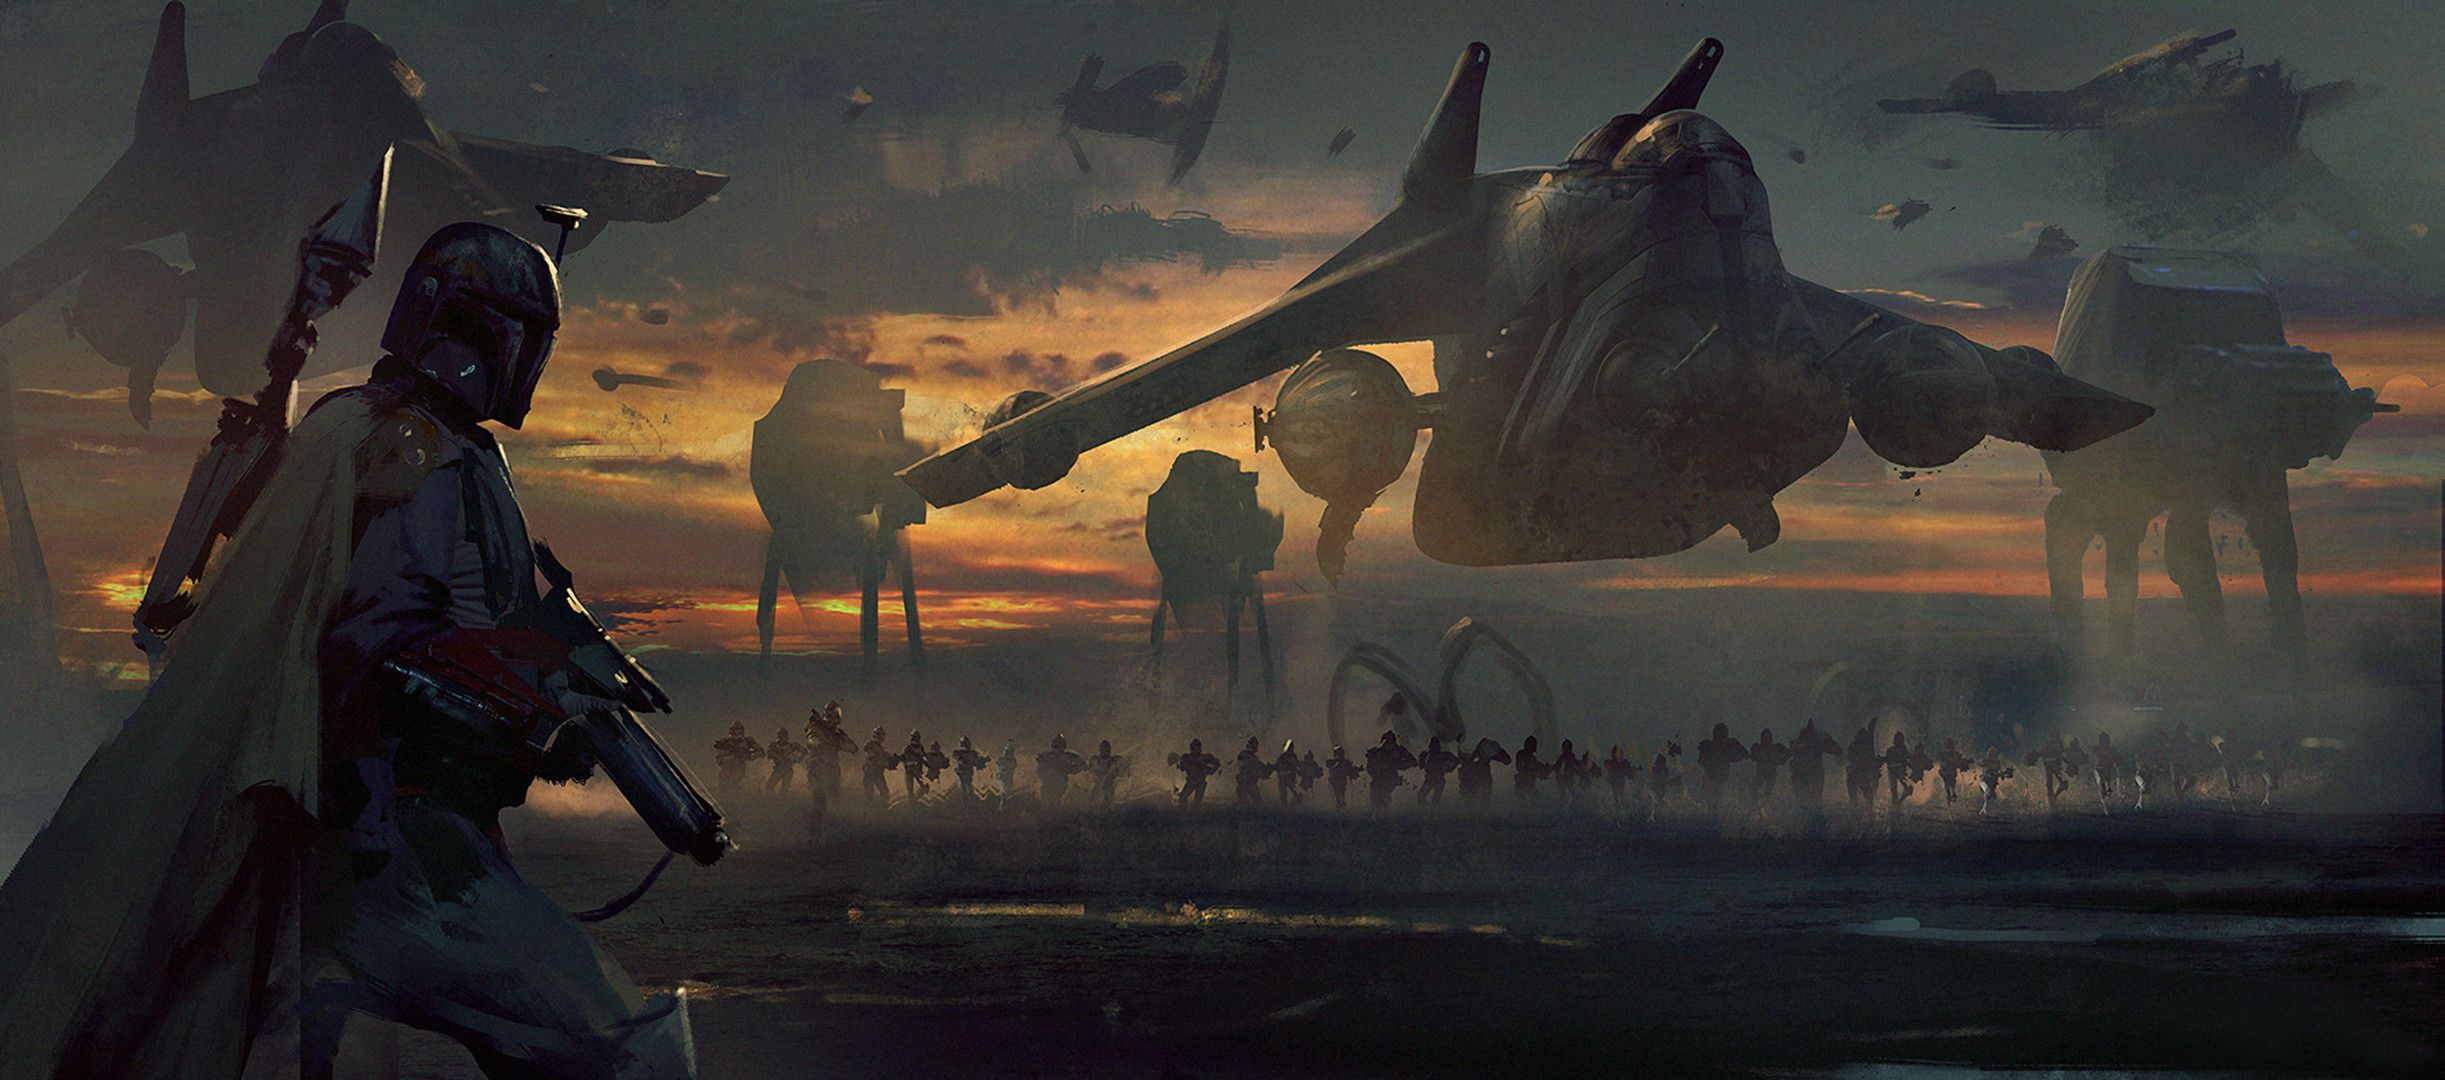 Star Wars Art Wallpapers Top Free Star Wars Art Backgrounds